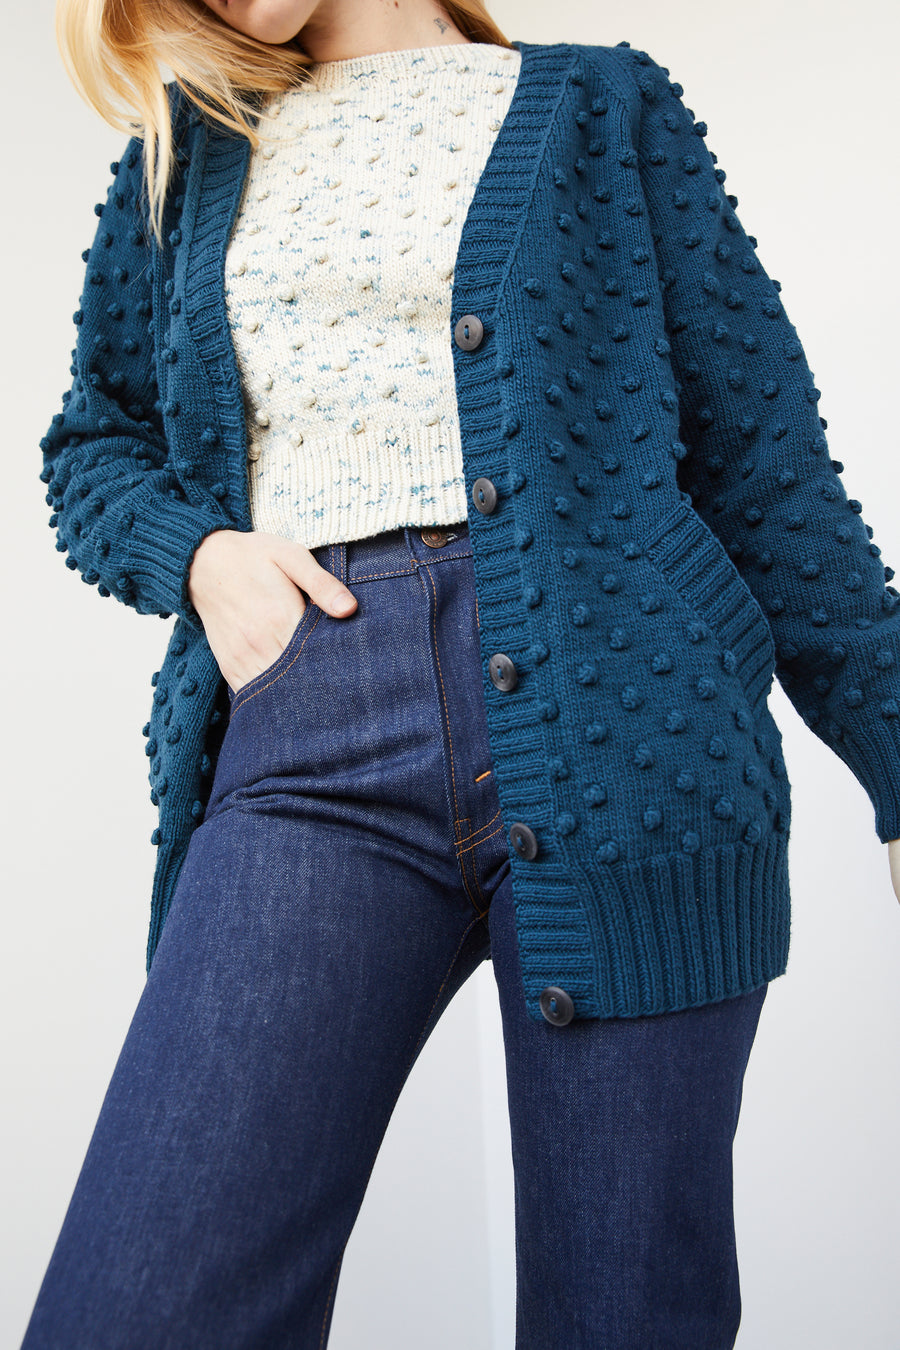 Adult Popcorn Long Cardigan - Marine Blue